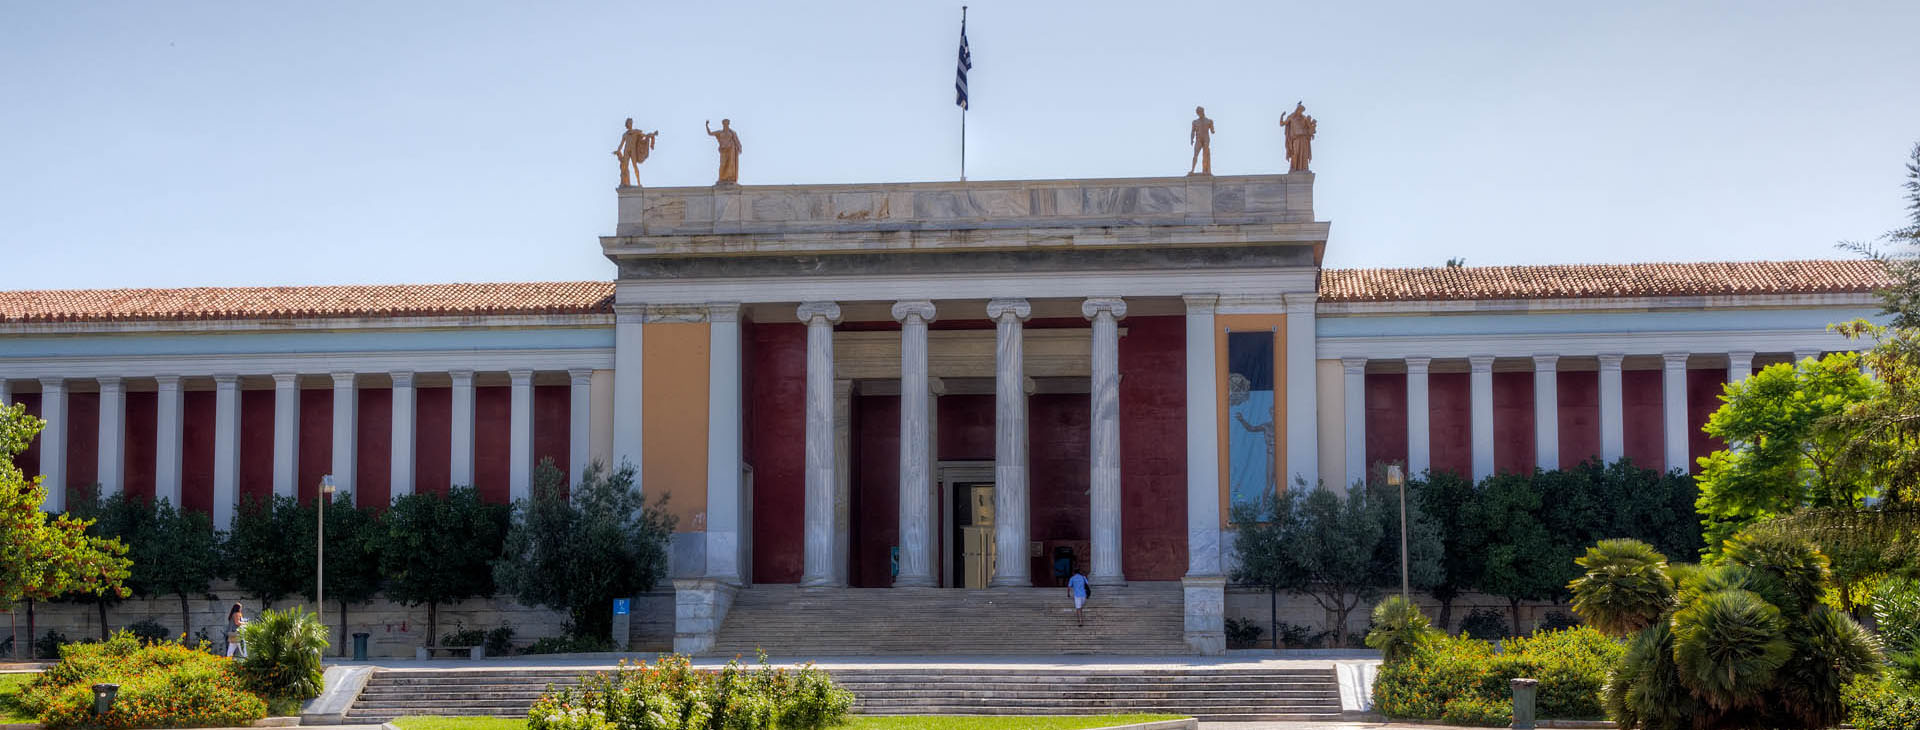 National Archaeological Museum of Greece, Athens